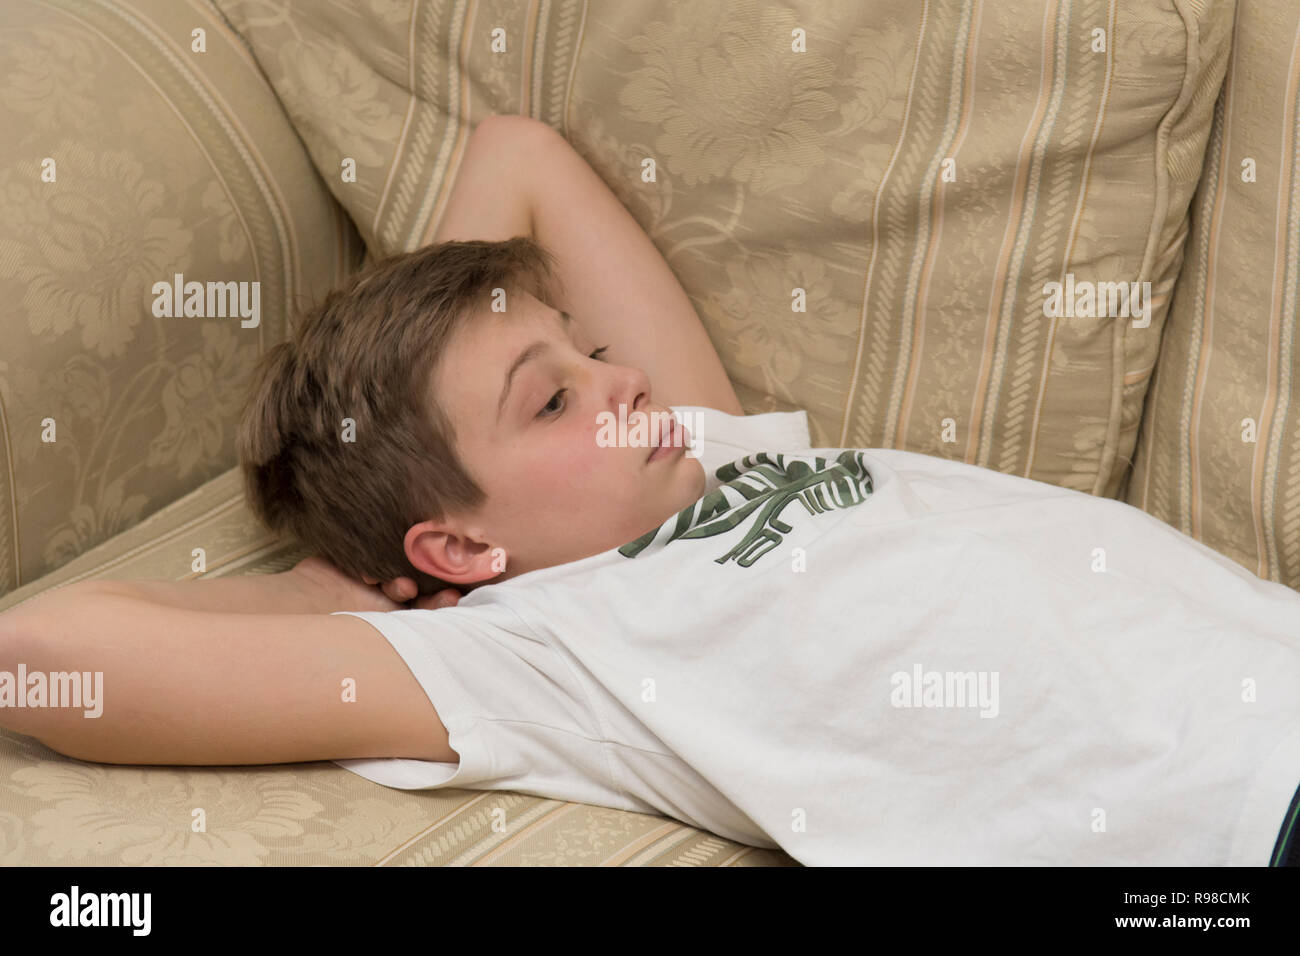 lethargic bored sullen moody lazy twelve-year-old boy laying on a sofa - Stock Image